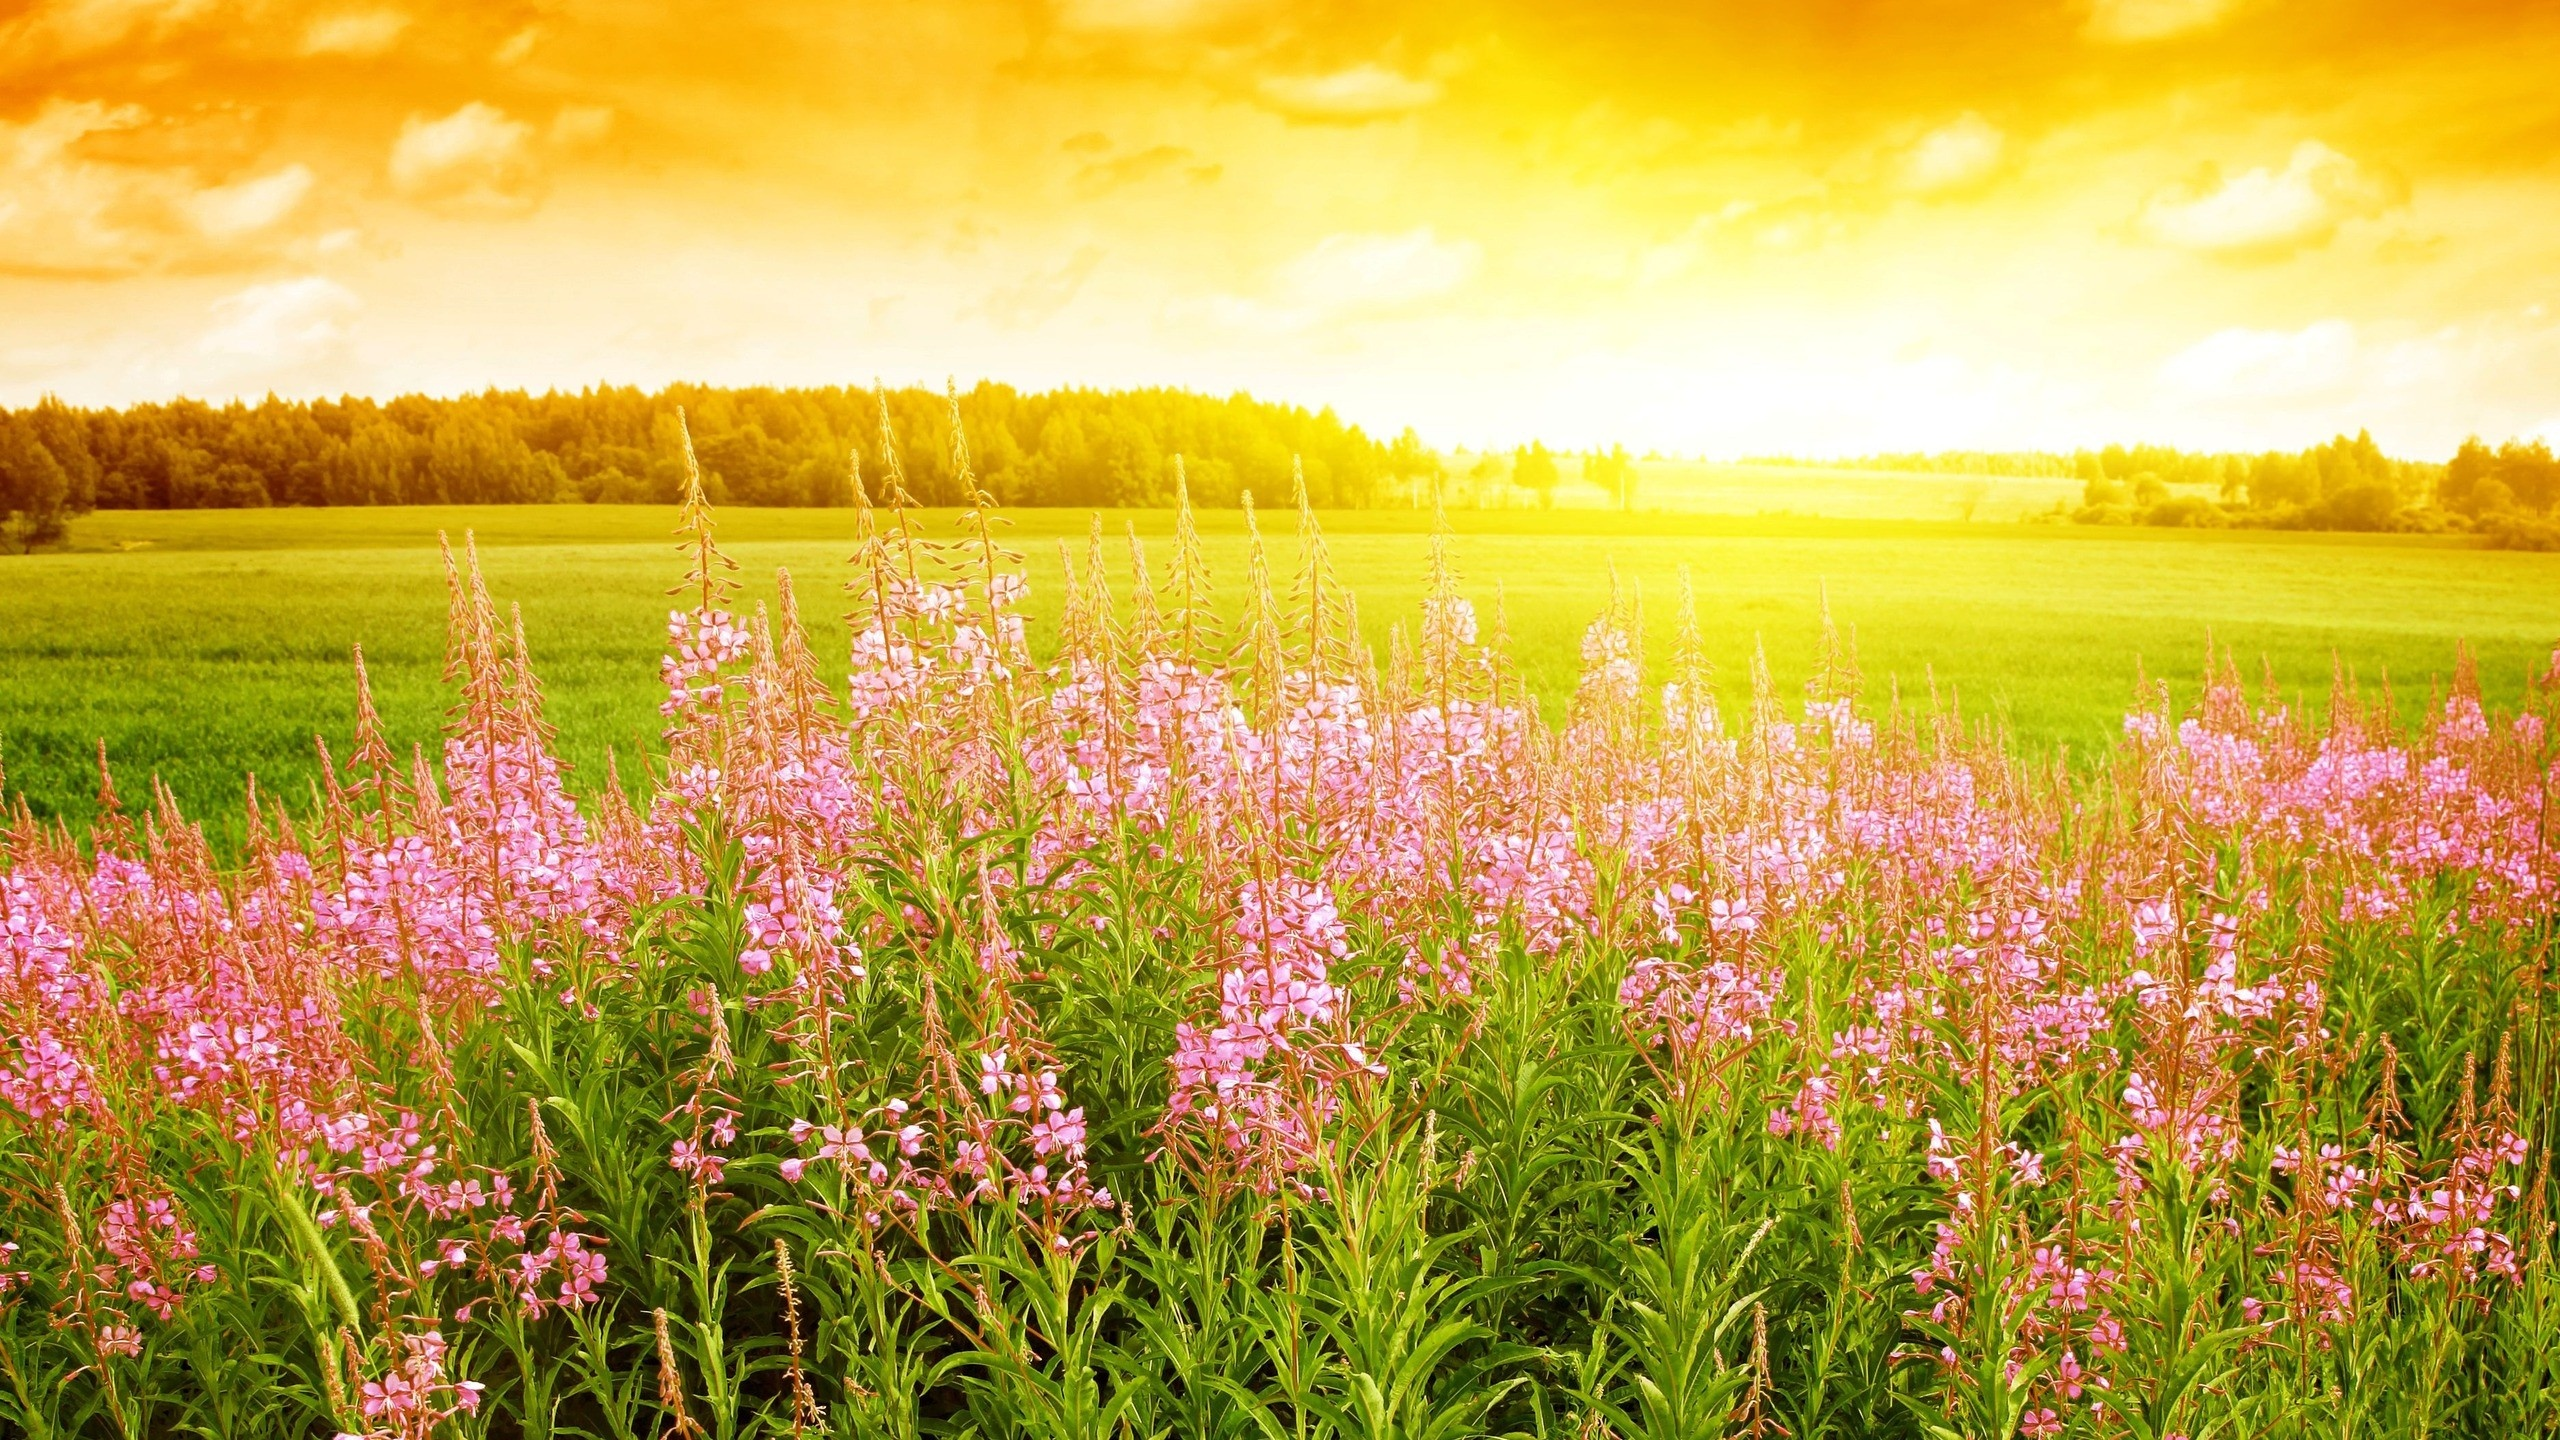 Description: The Wallpaper above is Lavender Meadow Wallpaper in Resolution 2560x1440. Choose your Resolution and Download Lavender Meadow Wallpaper